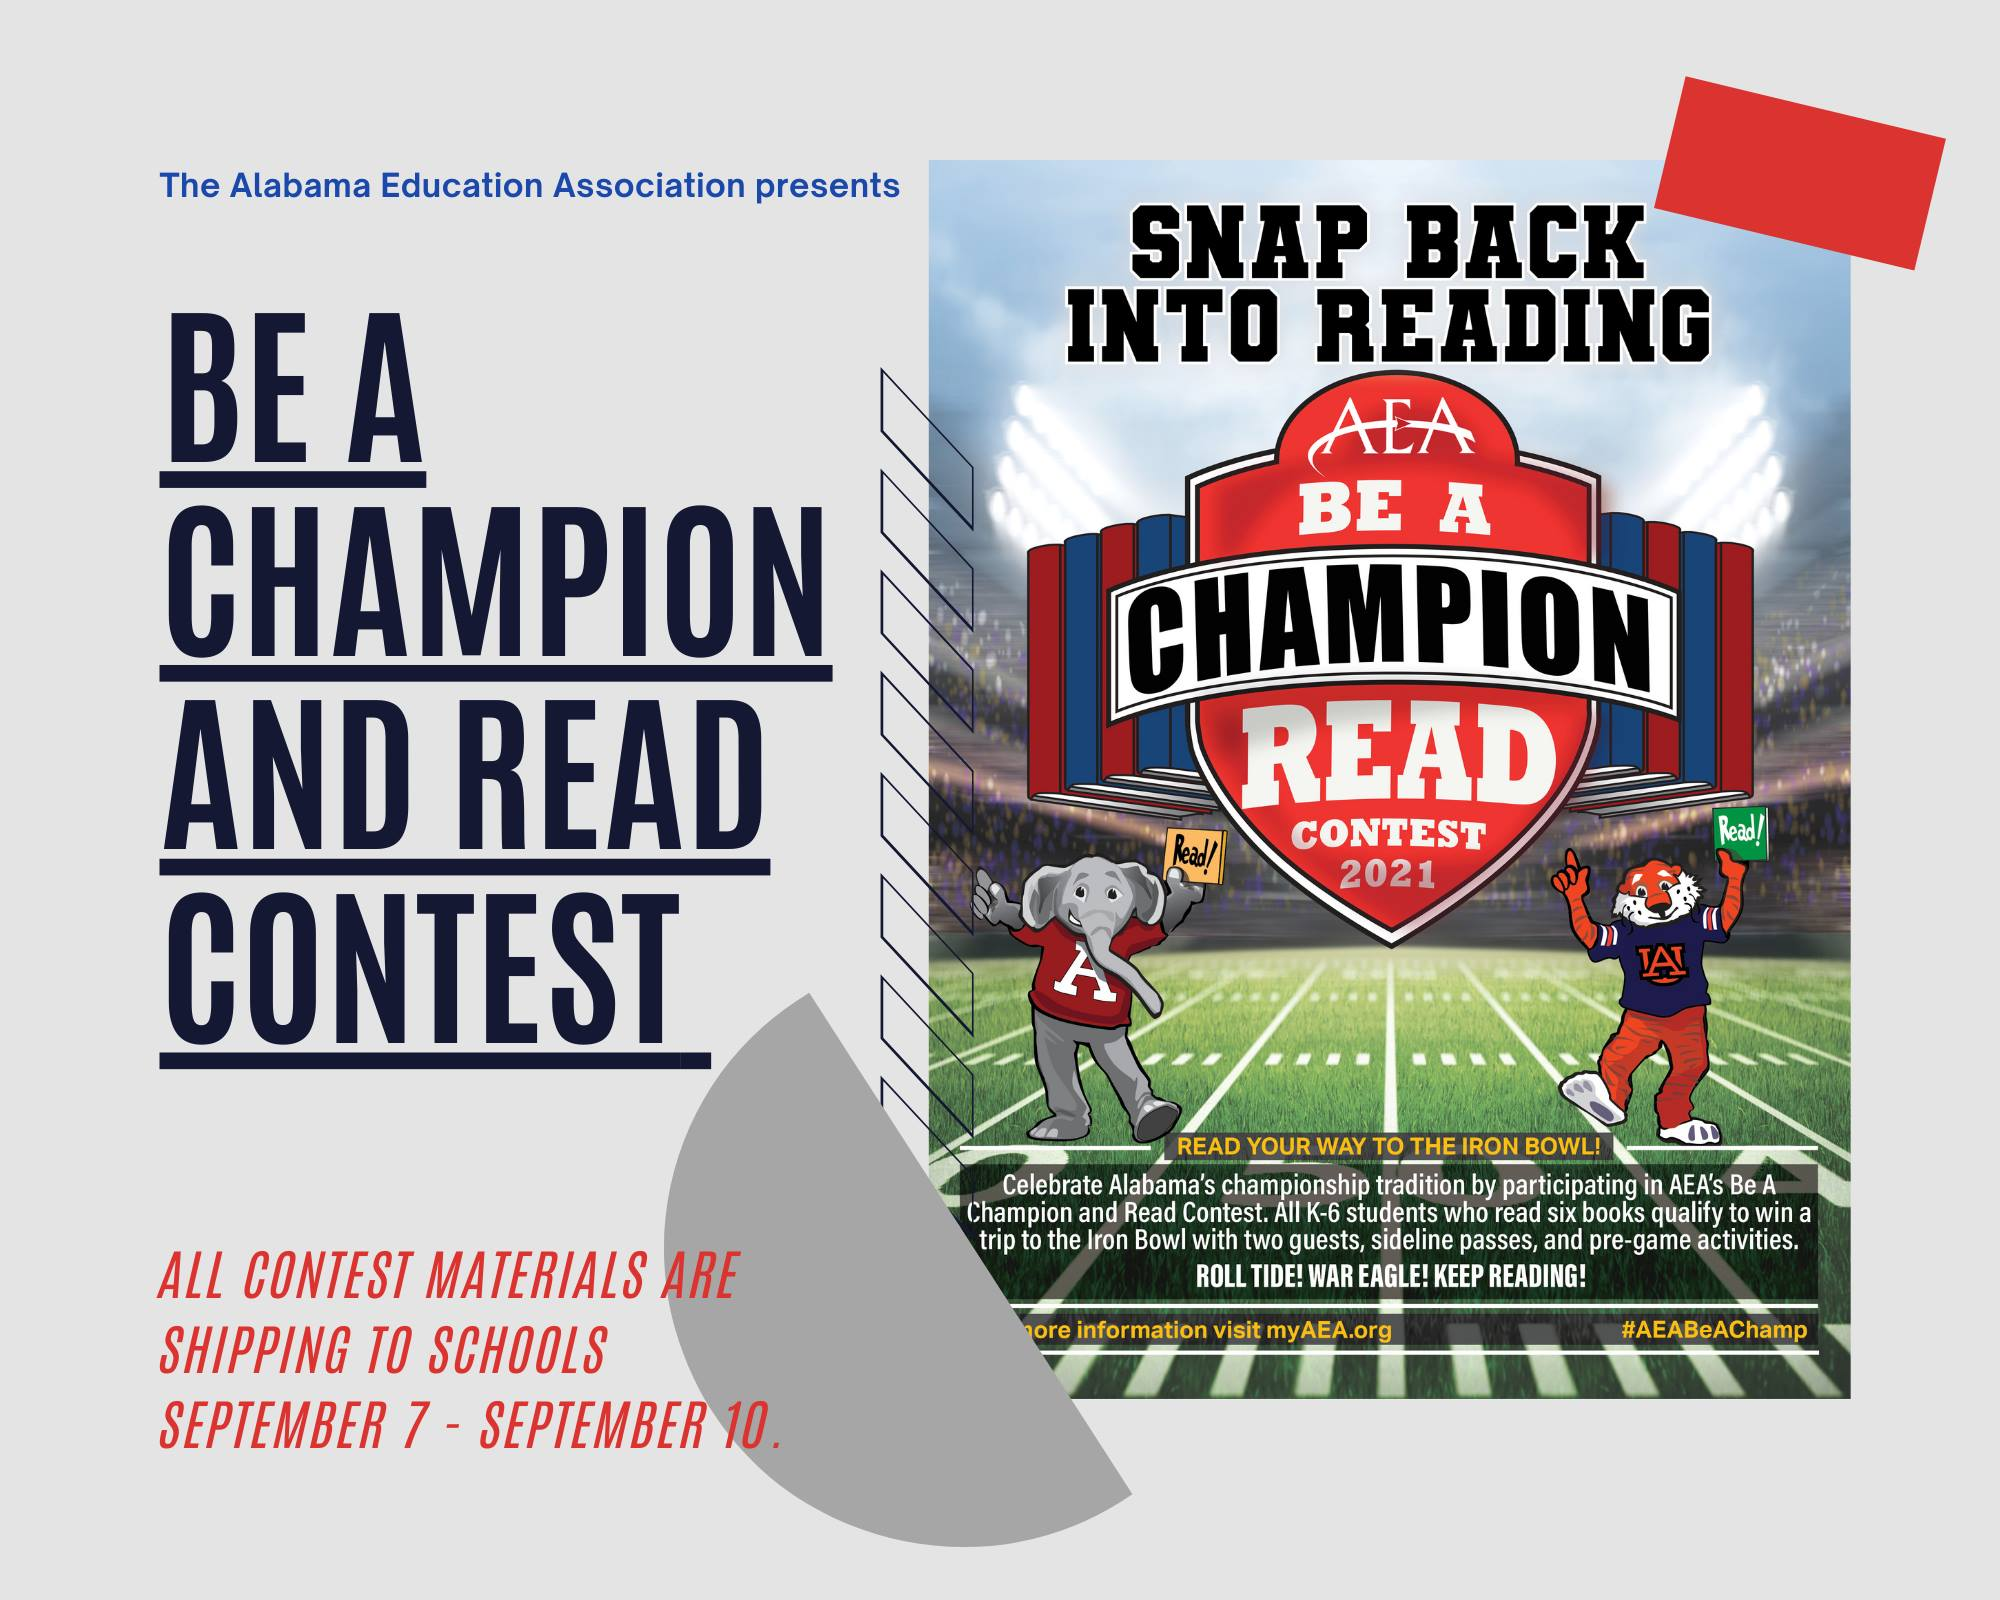 Be A Champion and READ!